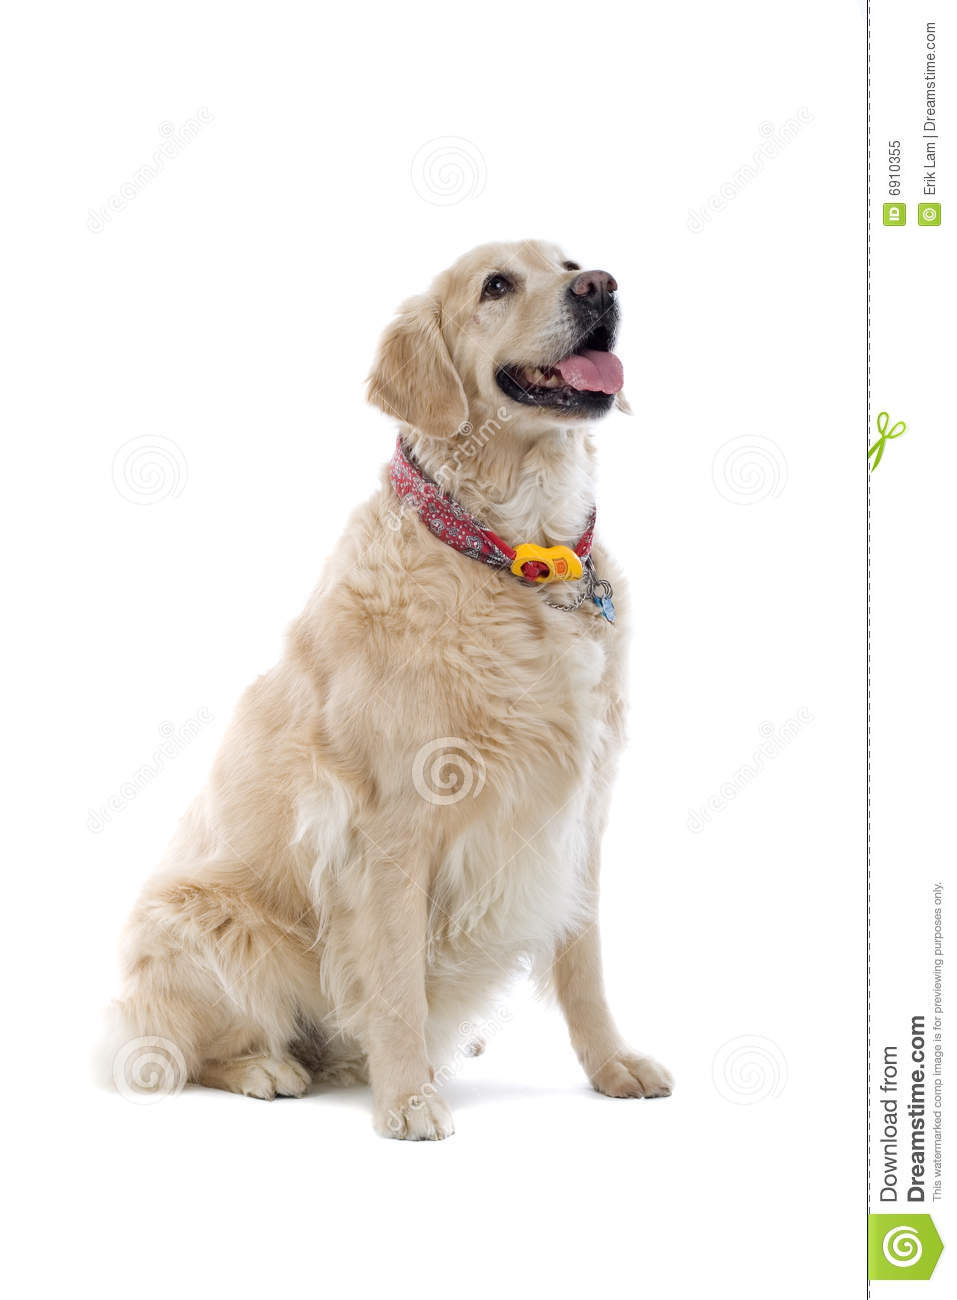 dogs similar to golden retriever golden retriever dog royalty free stock photo image 6910355 9230